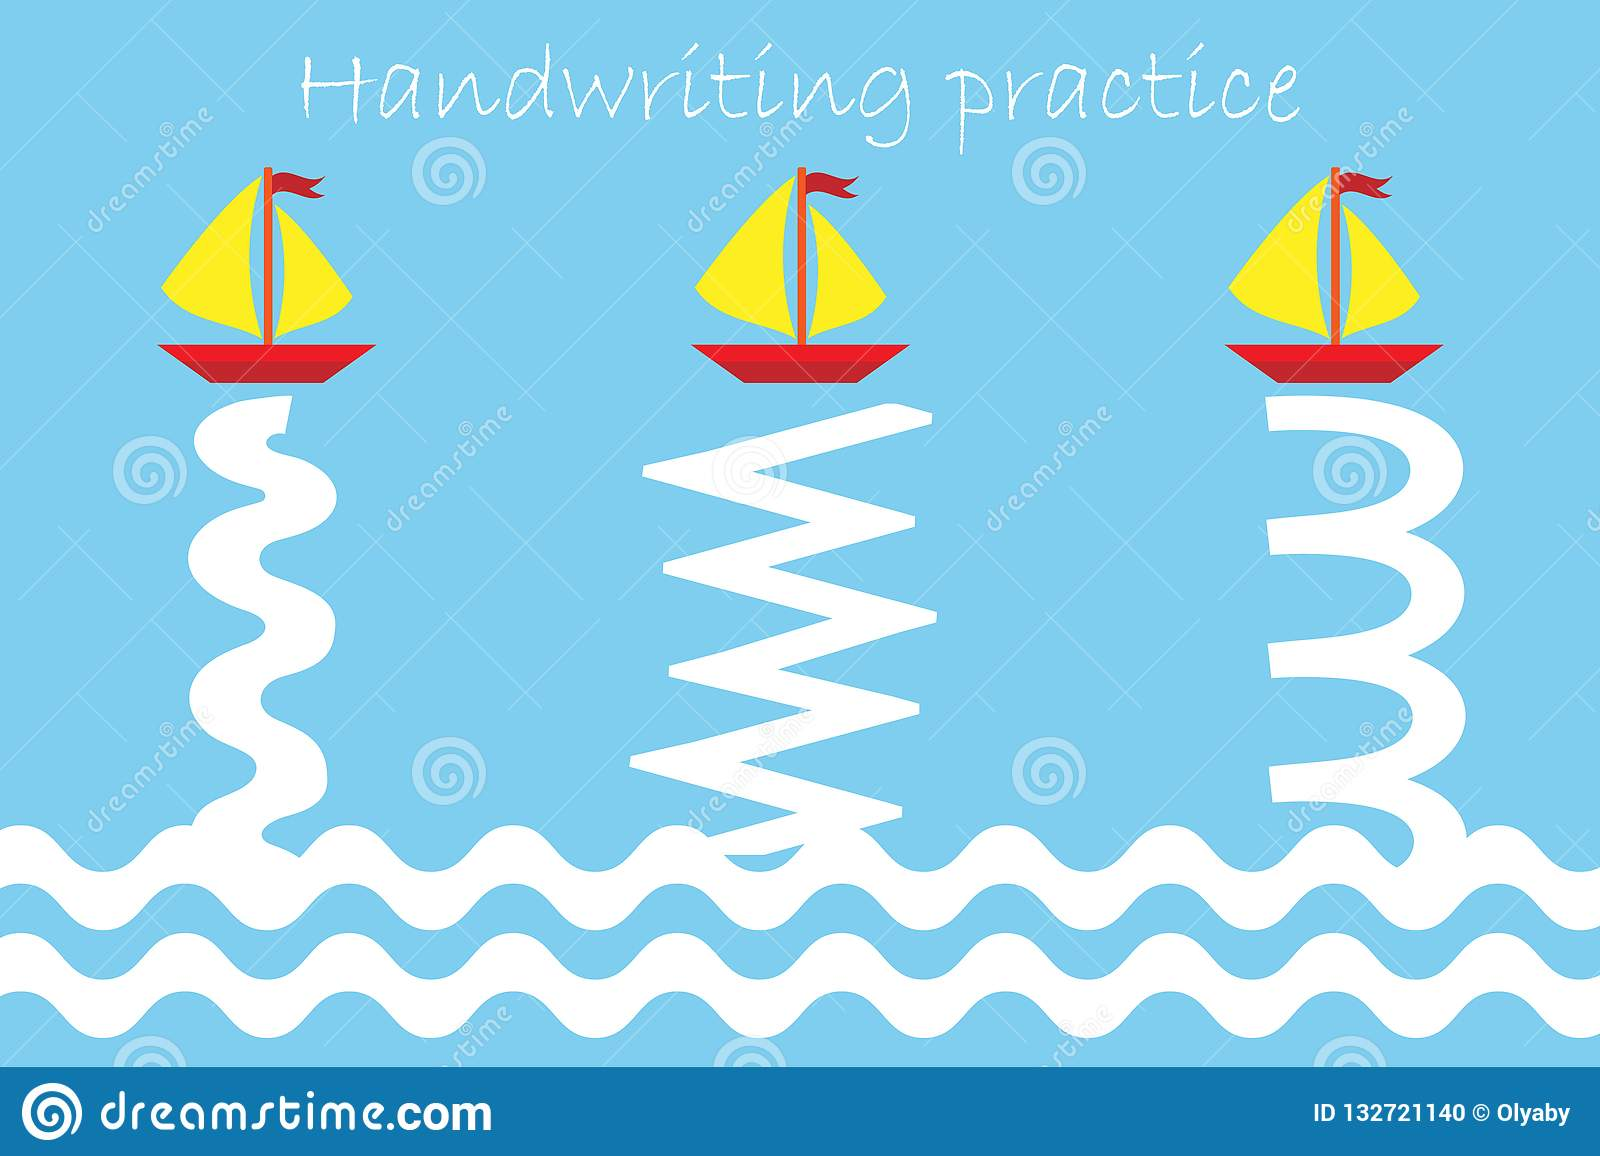 Draw Track Of Ships And Waves Handwriting Practice Sheet